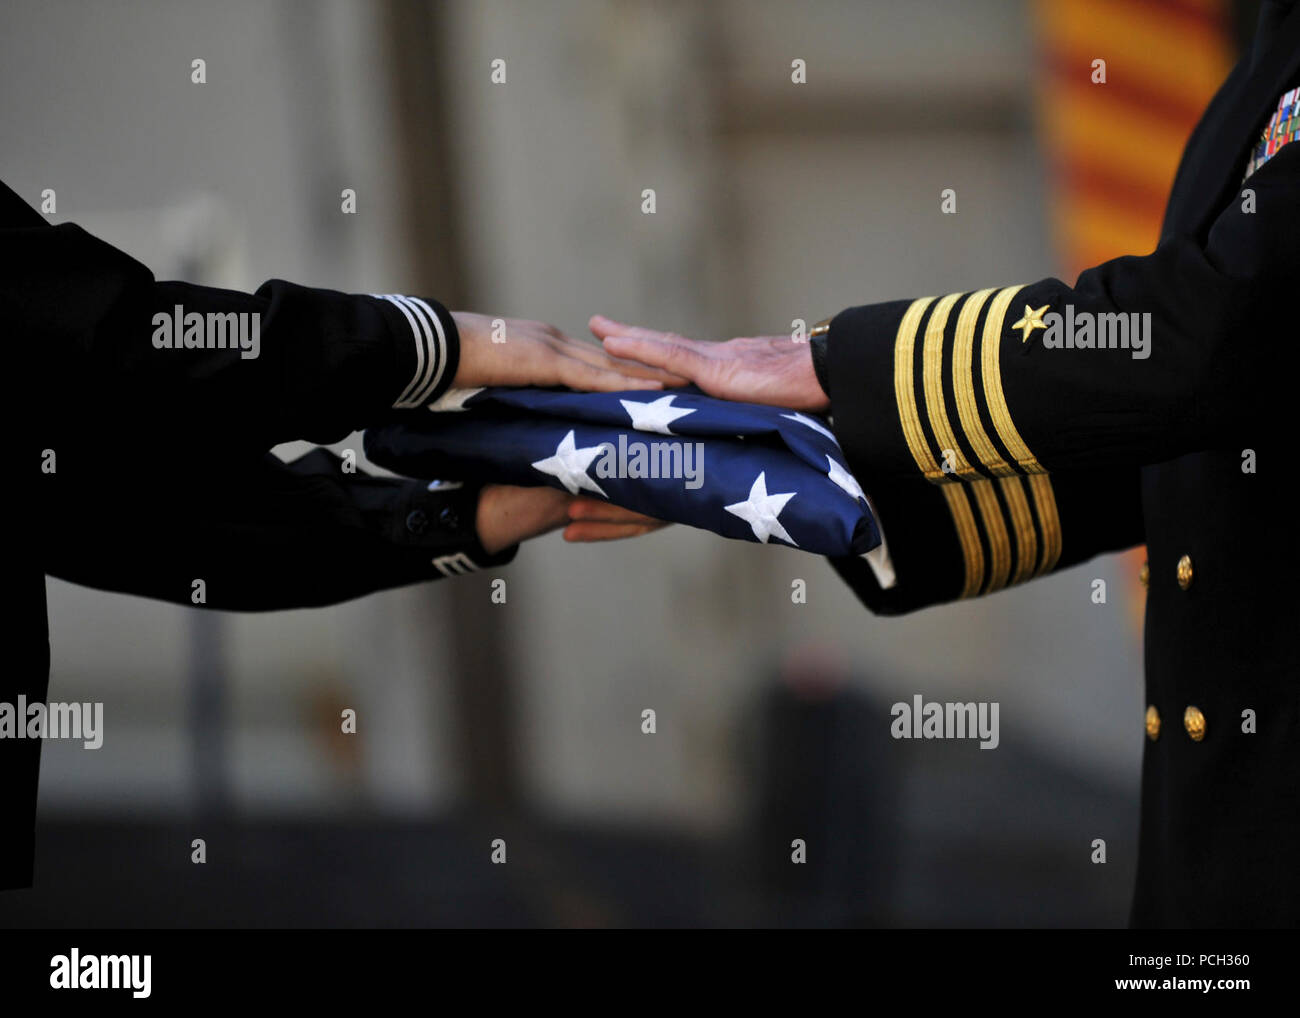 PACIFIC OCEAN (Nov. 16, 2012) Religious Programs Specialist 3rd Class Zachary Misner, left, and Capt. Michael Donnelly, the executive officer of the aircraft carrier USS Nimitz (CVN 68), perform a passing of the flag ceremony during a burial at sea aboard Nimitz. Nimitz recently completed the ship's joint task force exercise, intended to test a strike group's ability to operate in hostile and complex environments with other U.S. and coalition forces. - Stock Image